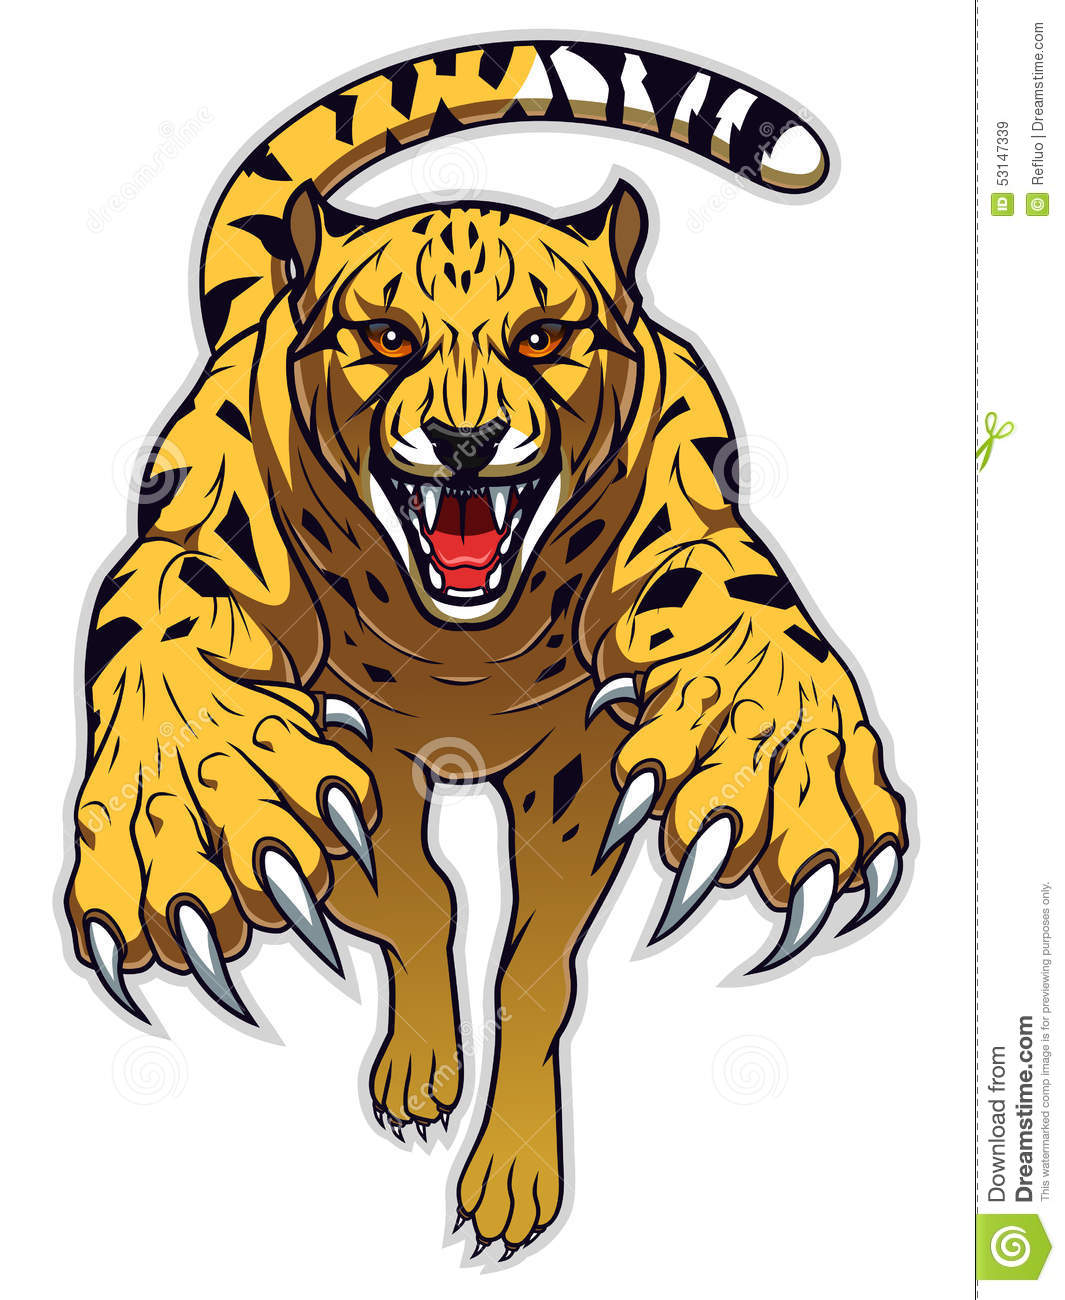 Pencil and in color. Cheetah clipart angry